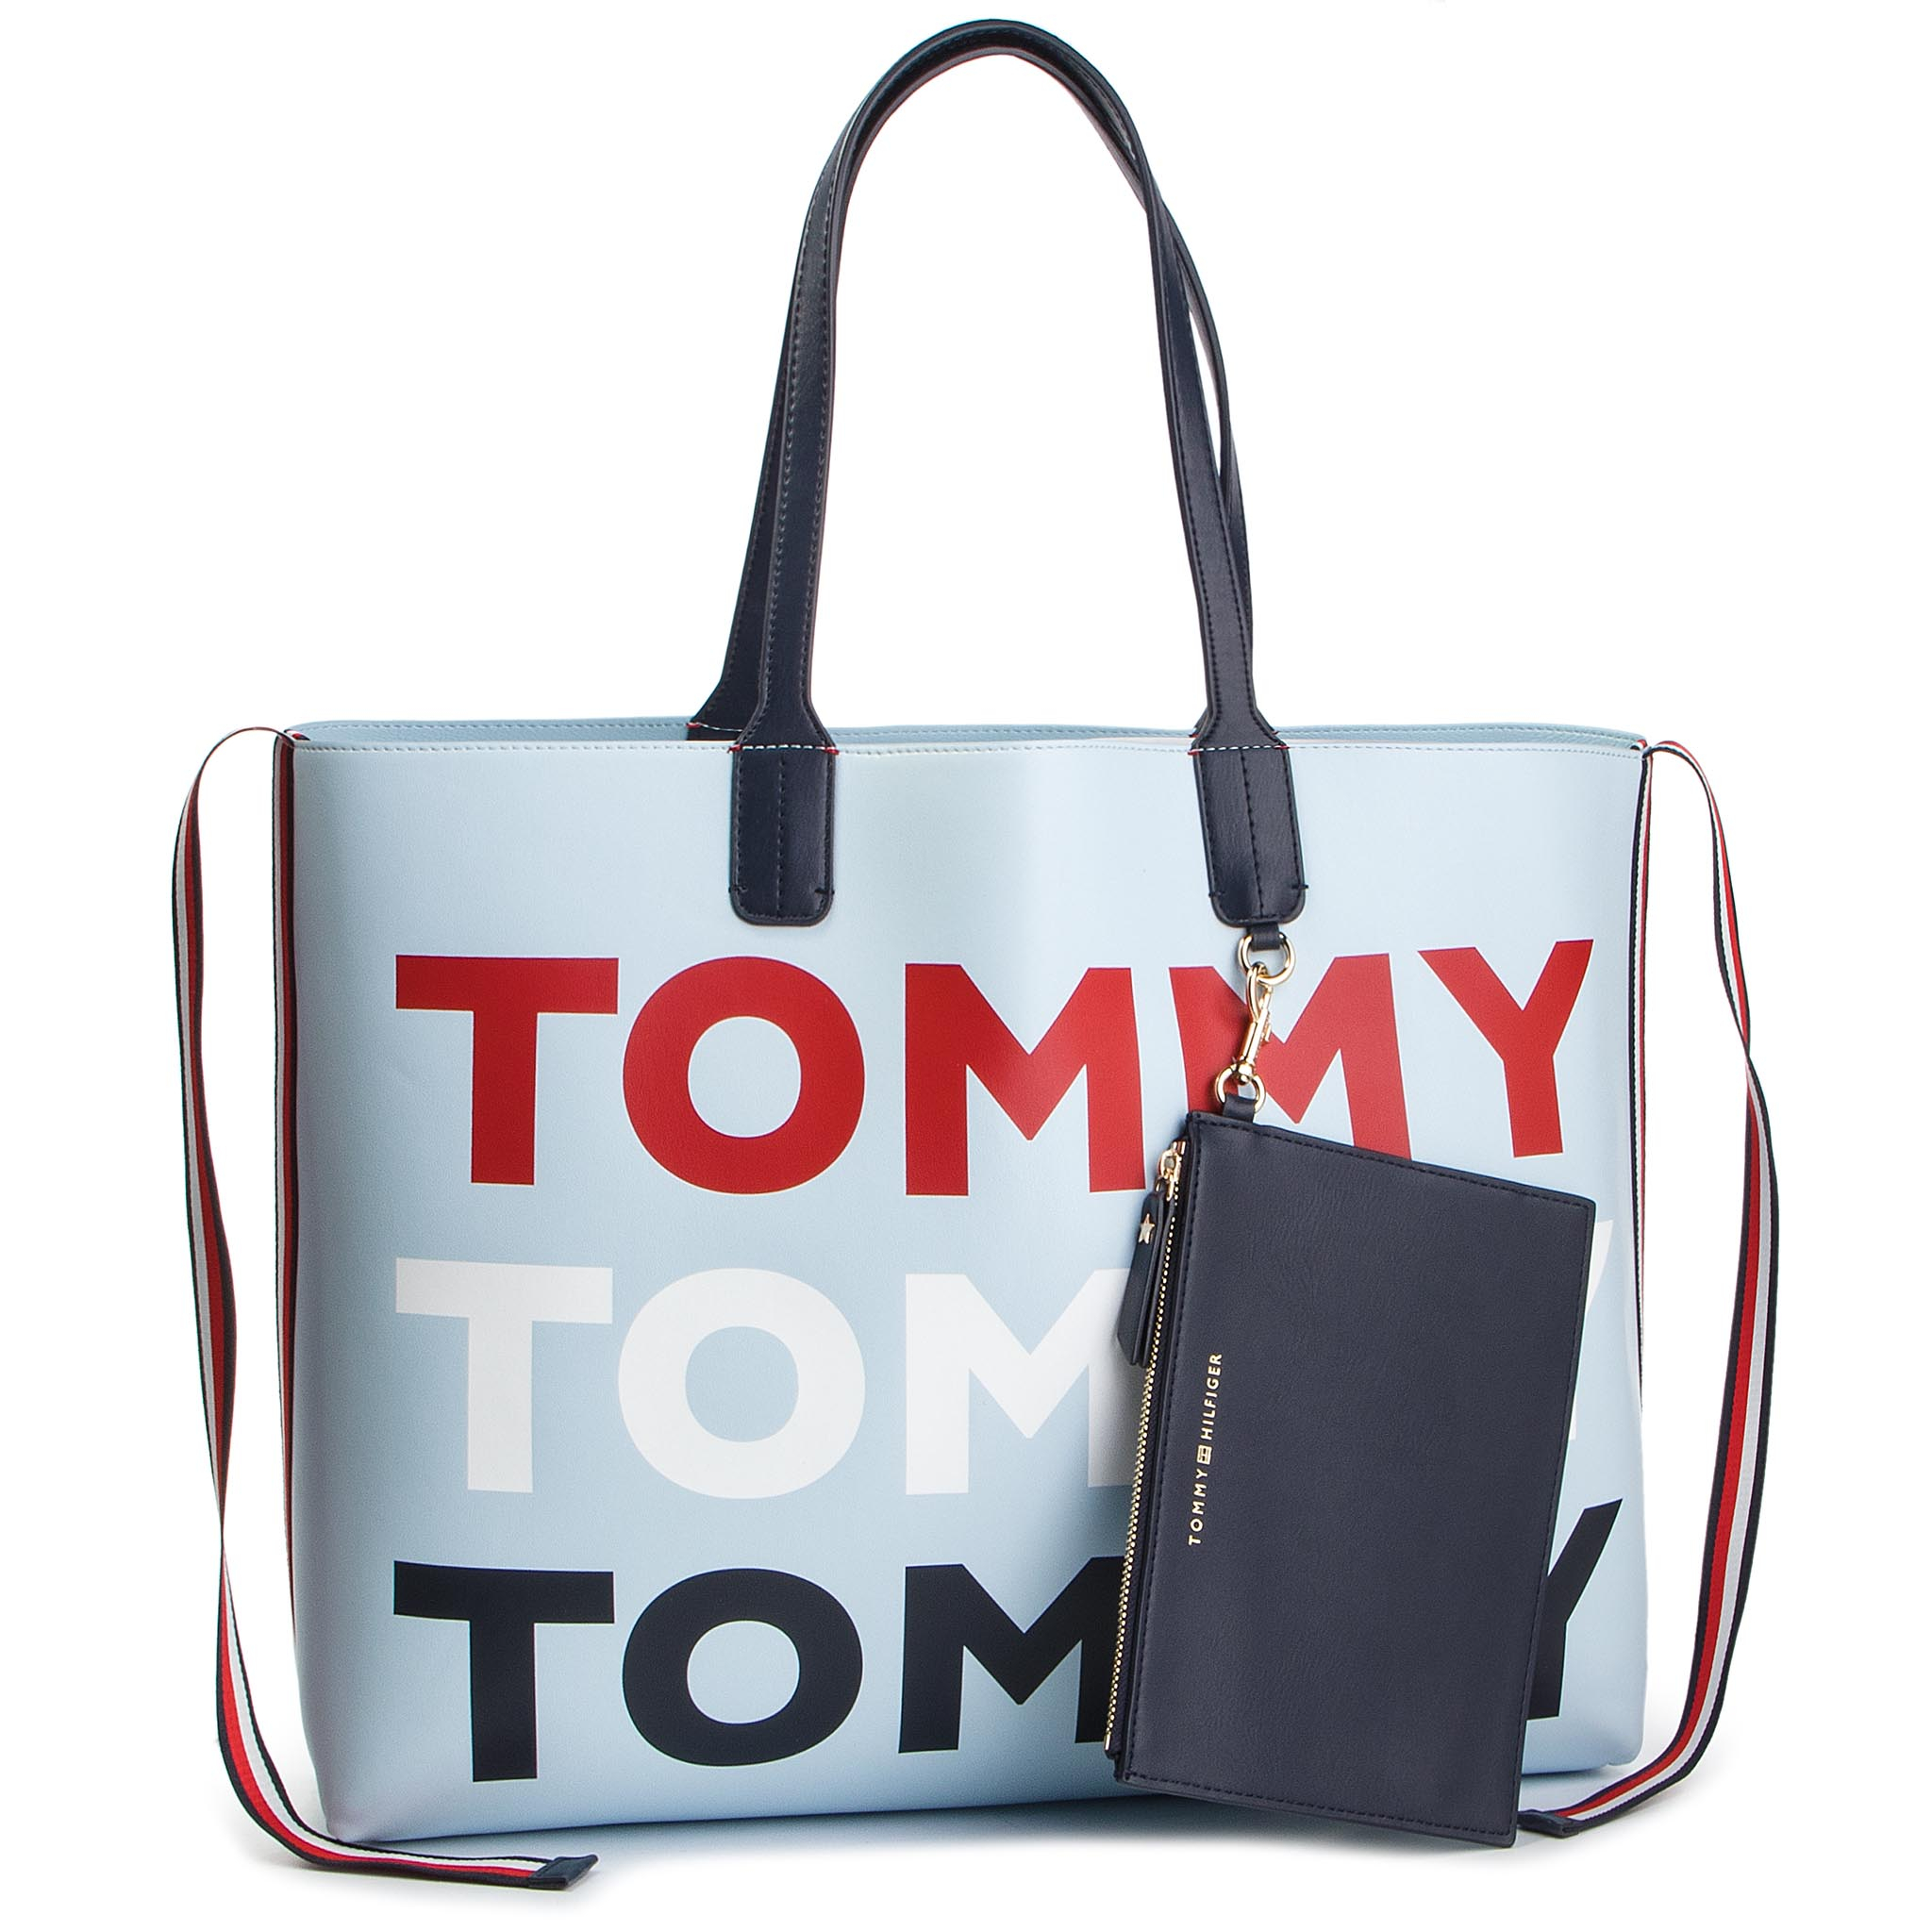 2d87cc57c3 Kabelka TOMMY HILFIGER - Iconic Tommy Tote AW0AW06446 413